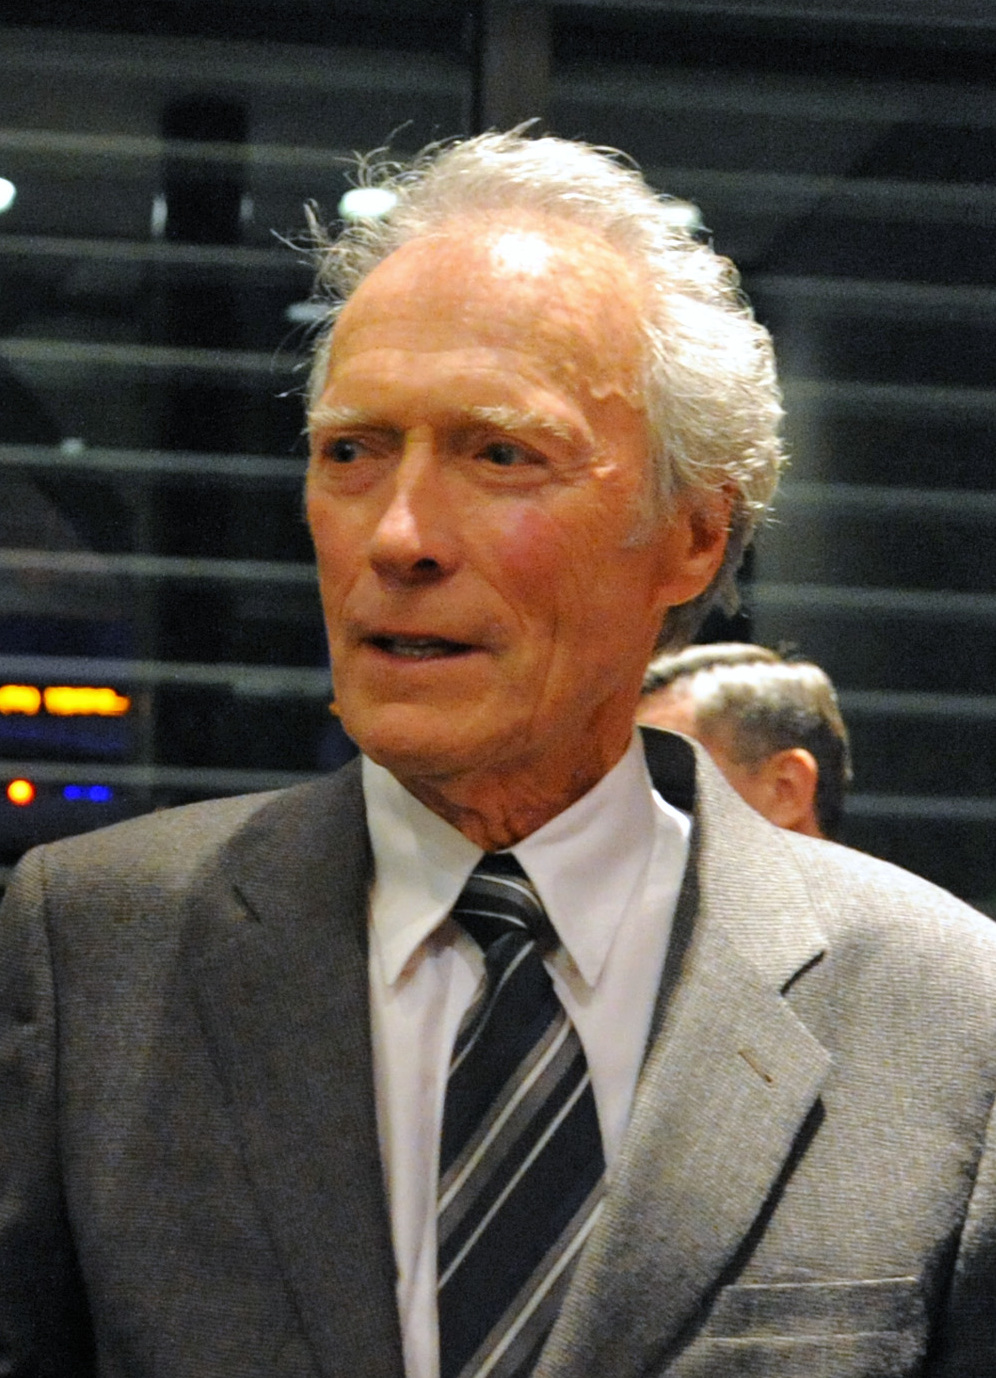 The 90-year old son of father Clinton Eastwood Sr.  and mother Ruth  Clint Eastwood in 2021 photo. Clint Eastwood earned a  million dollar salary - leaving the net worth at 375 million in 2021